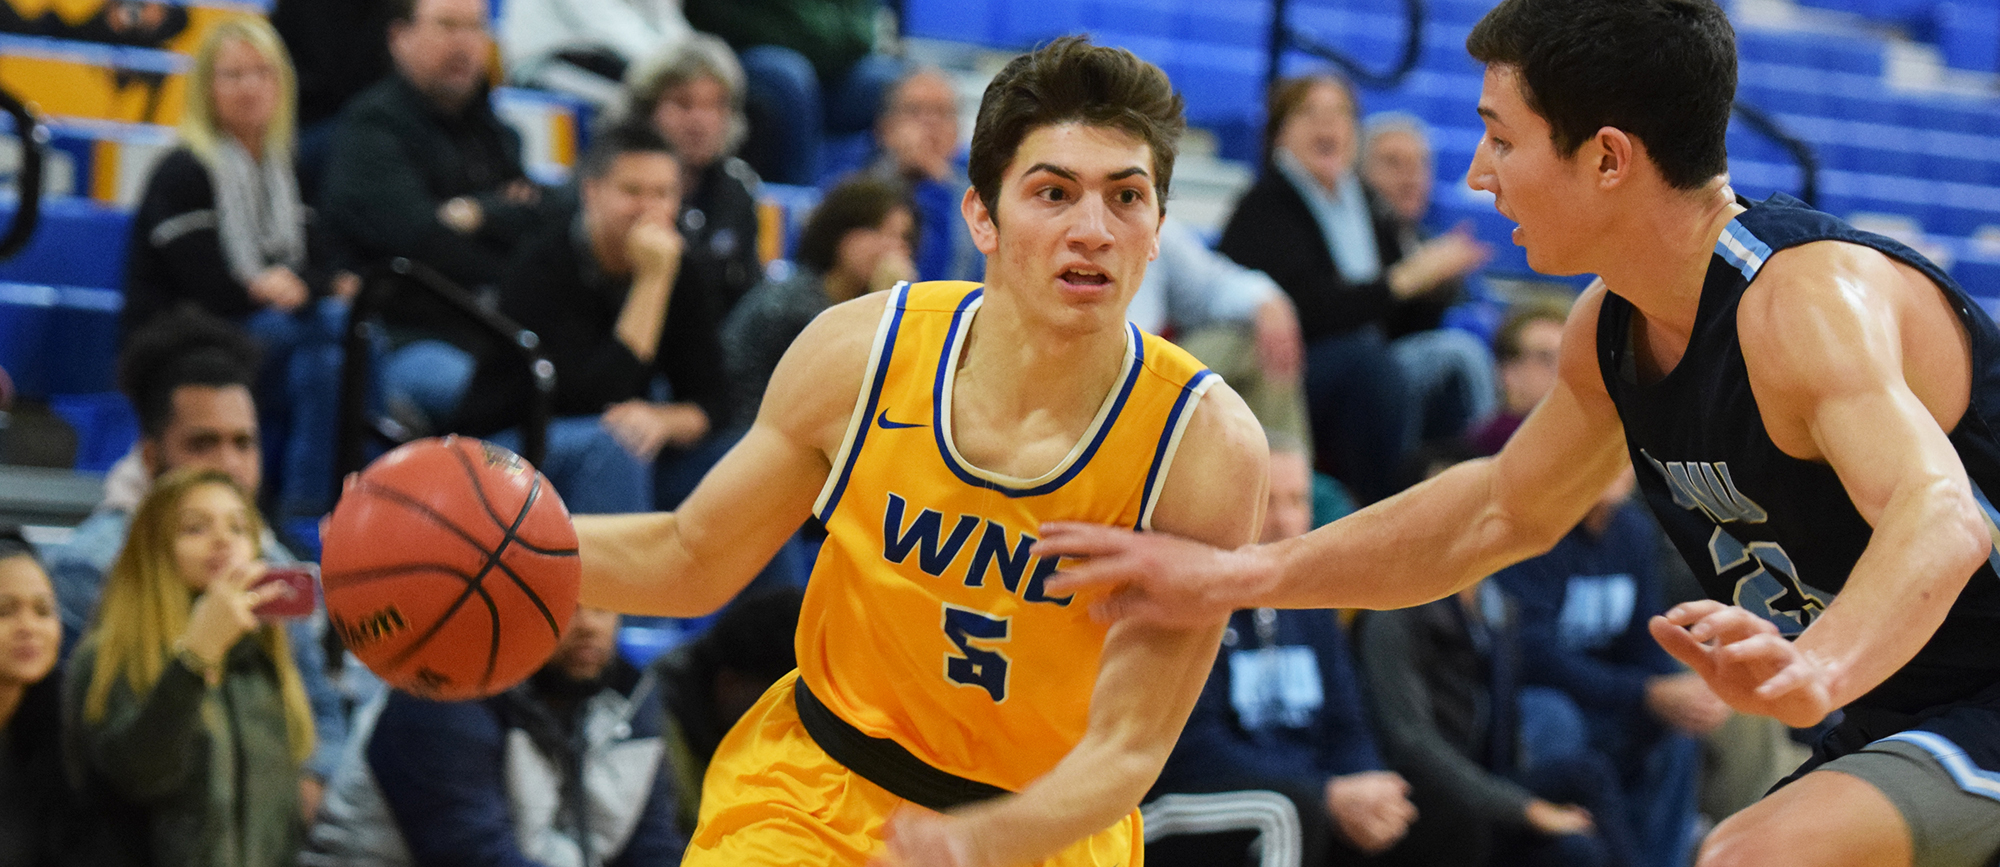 Freshman Antonio Brancato scored a season-high nine points in Western New England's 87-85 loss to Roger Williams on Wednesday. (Photo by Rachael Margossian)